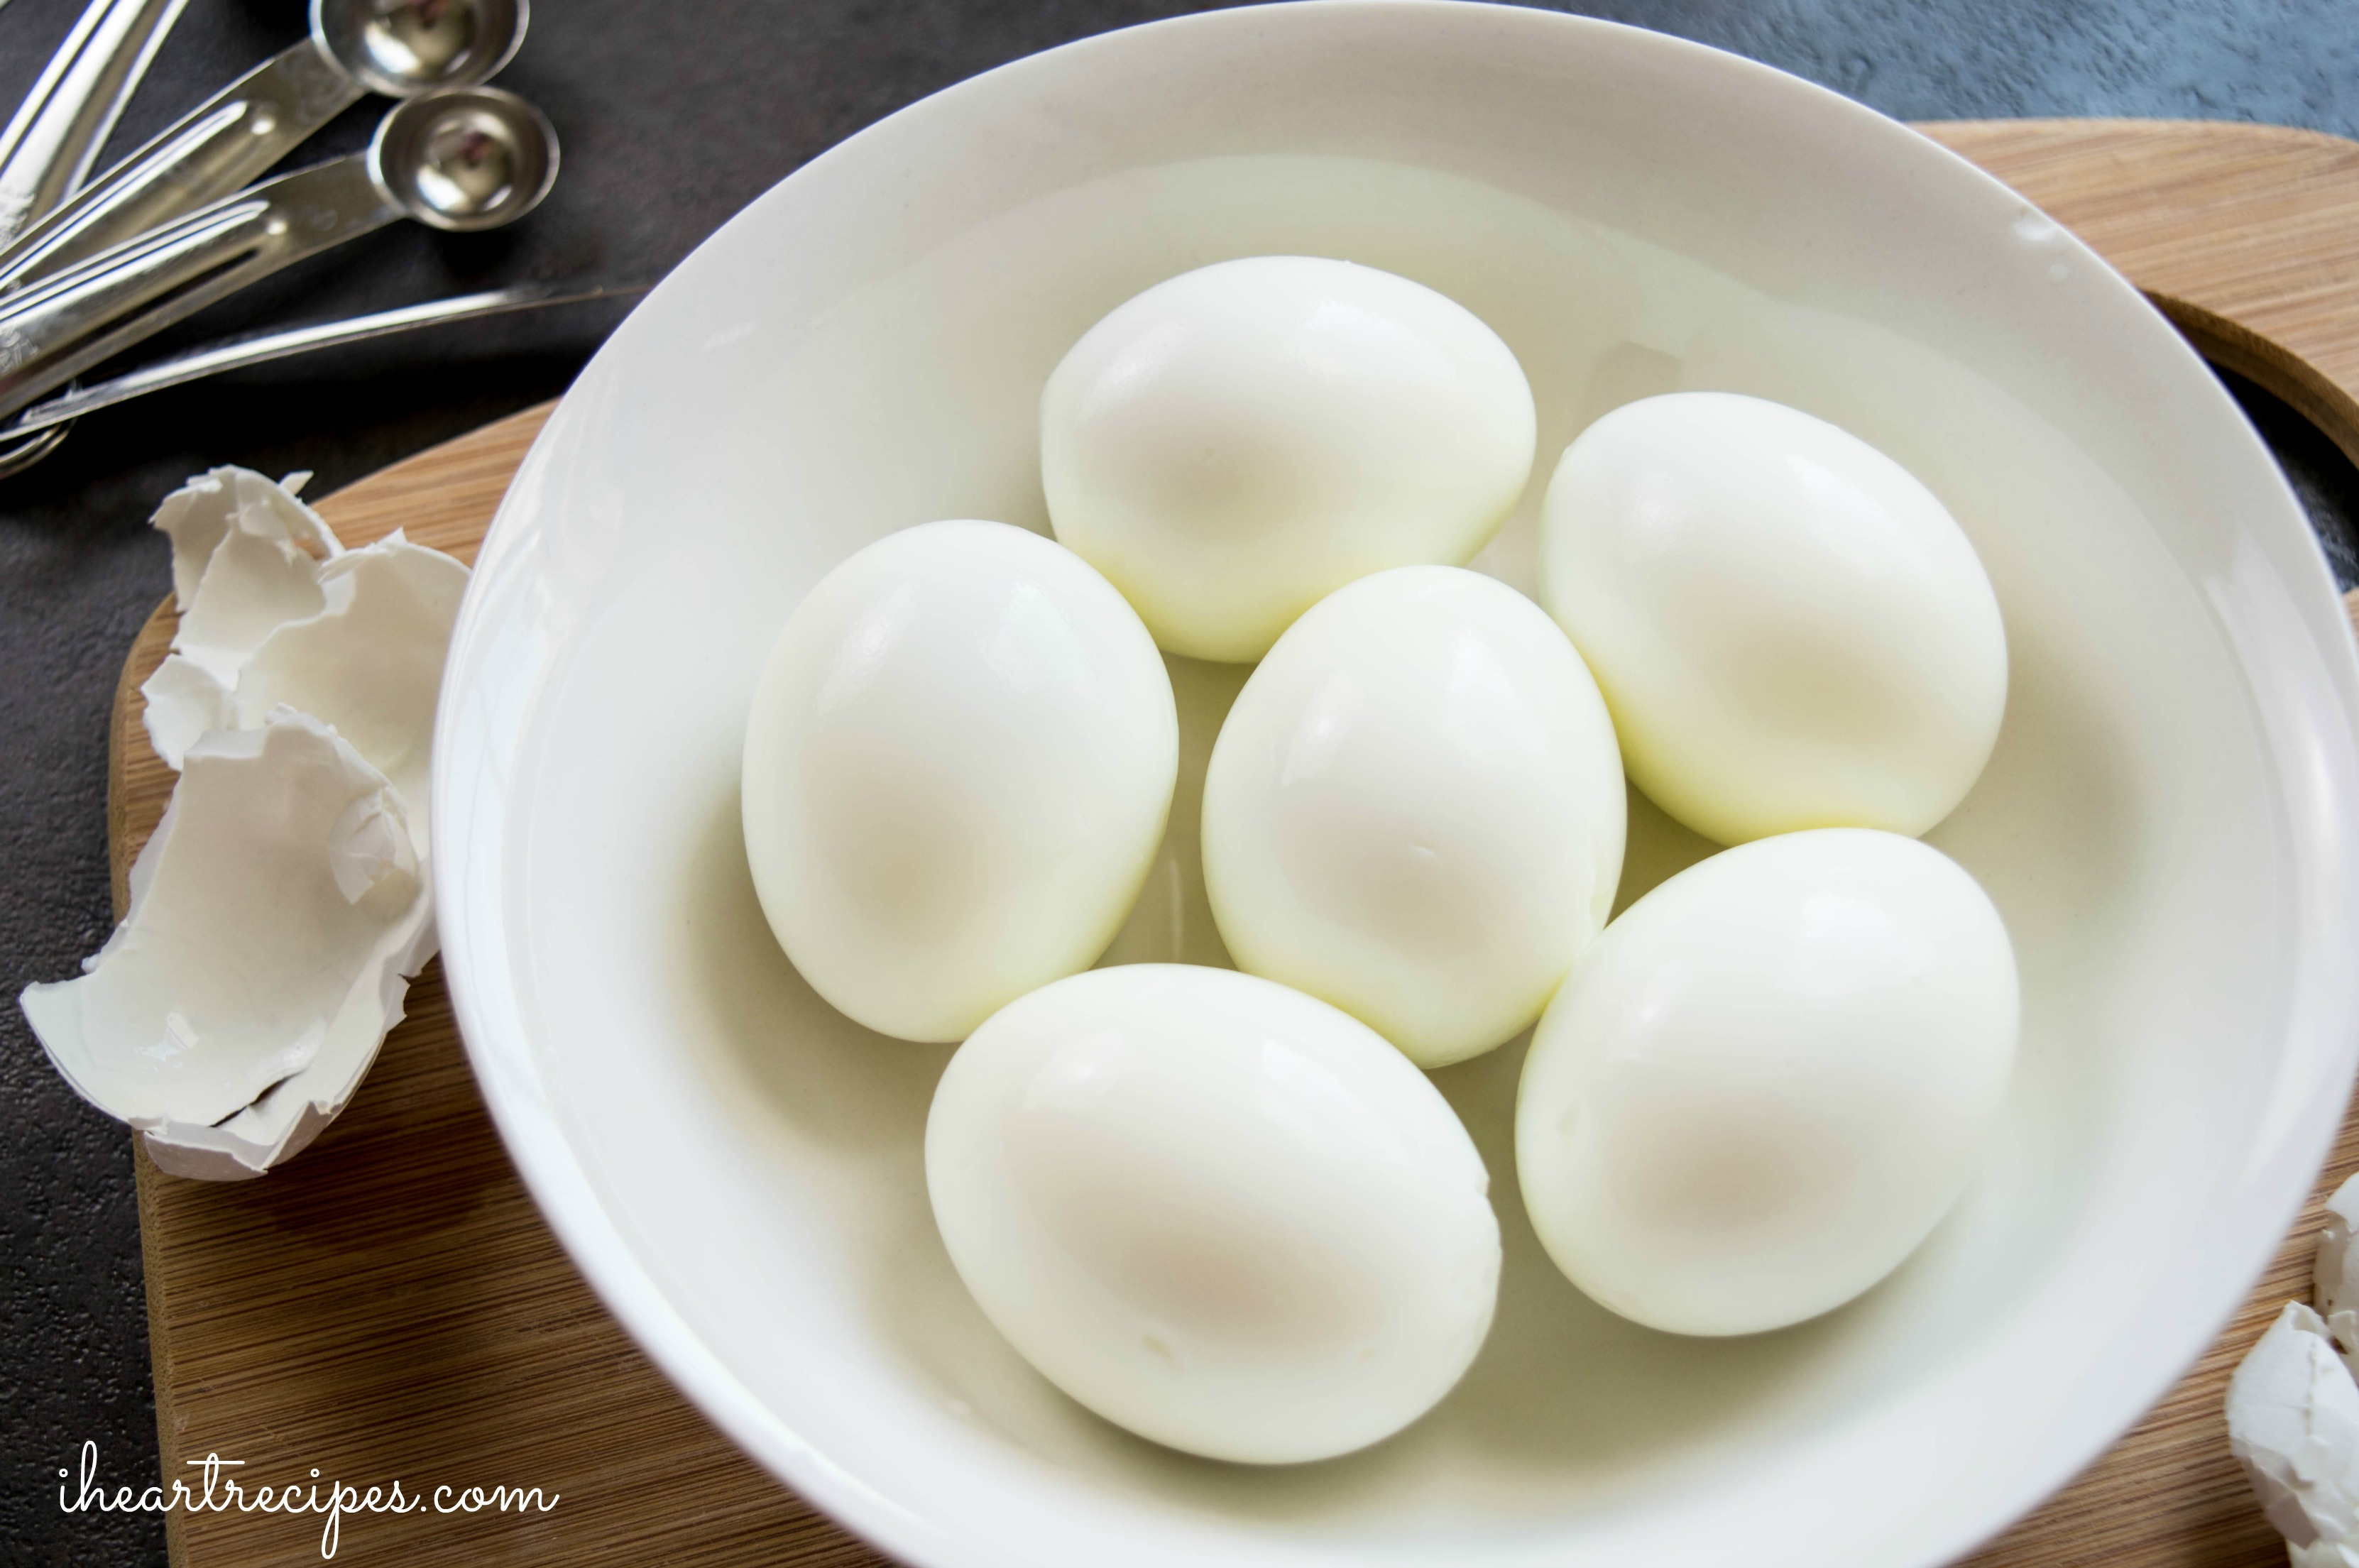 These hard boiled eggs can easily become delicious Southern style deviled eggs